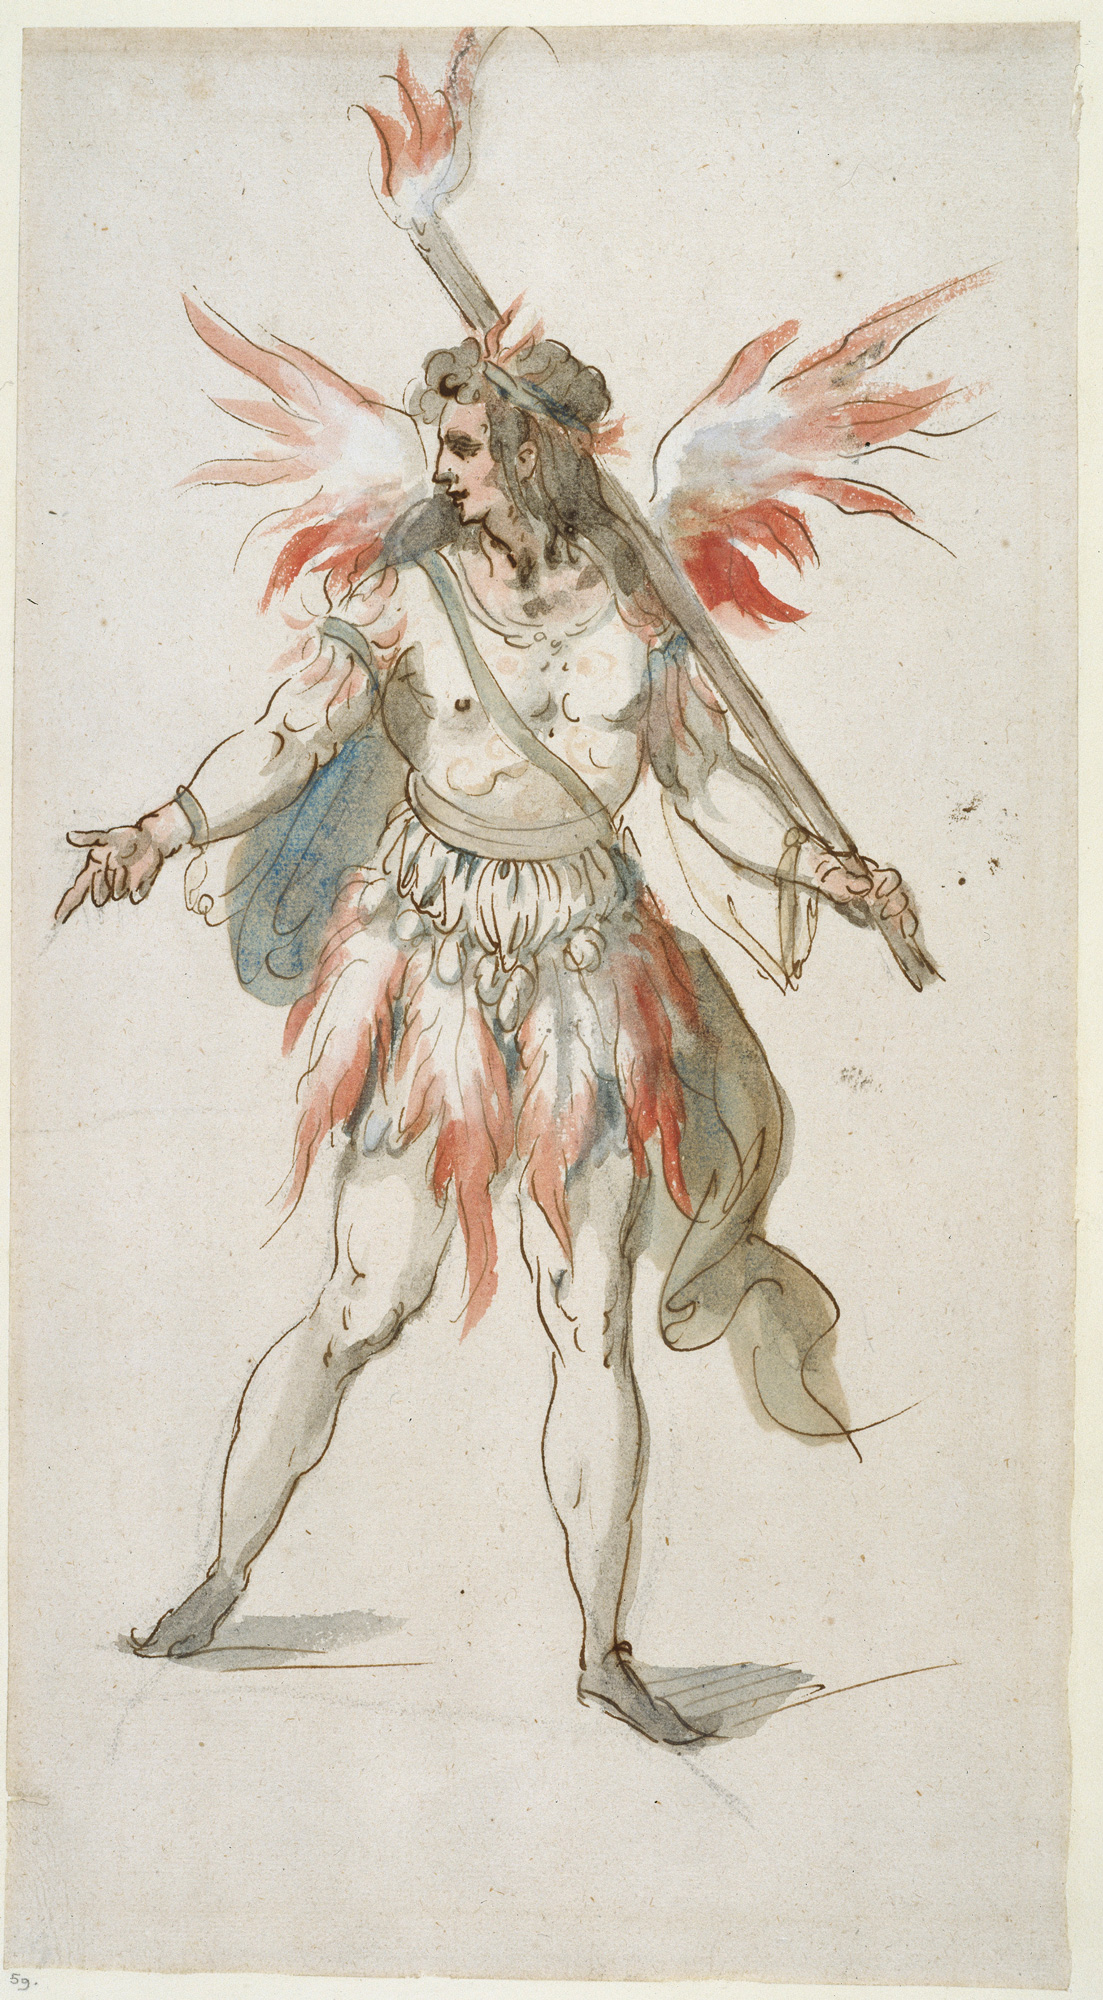 Inigo Jones designs for masque costumes